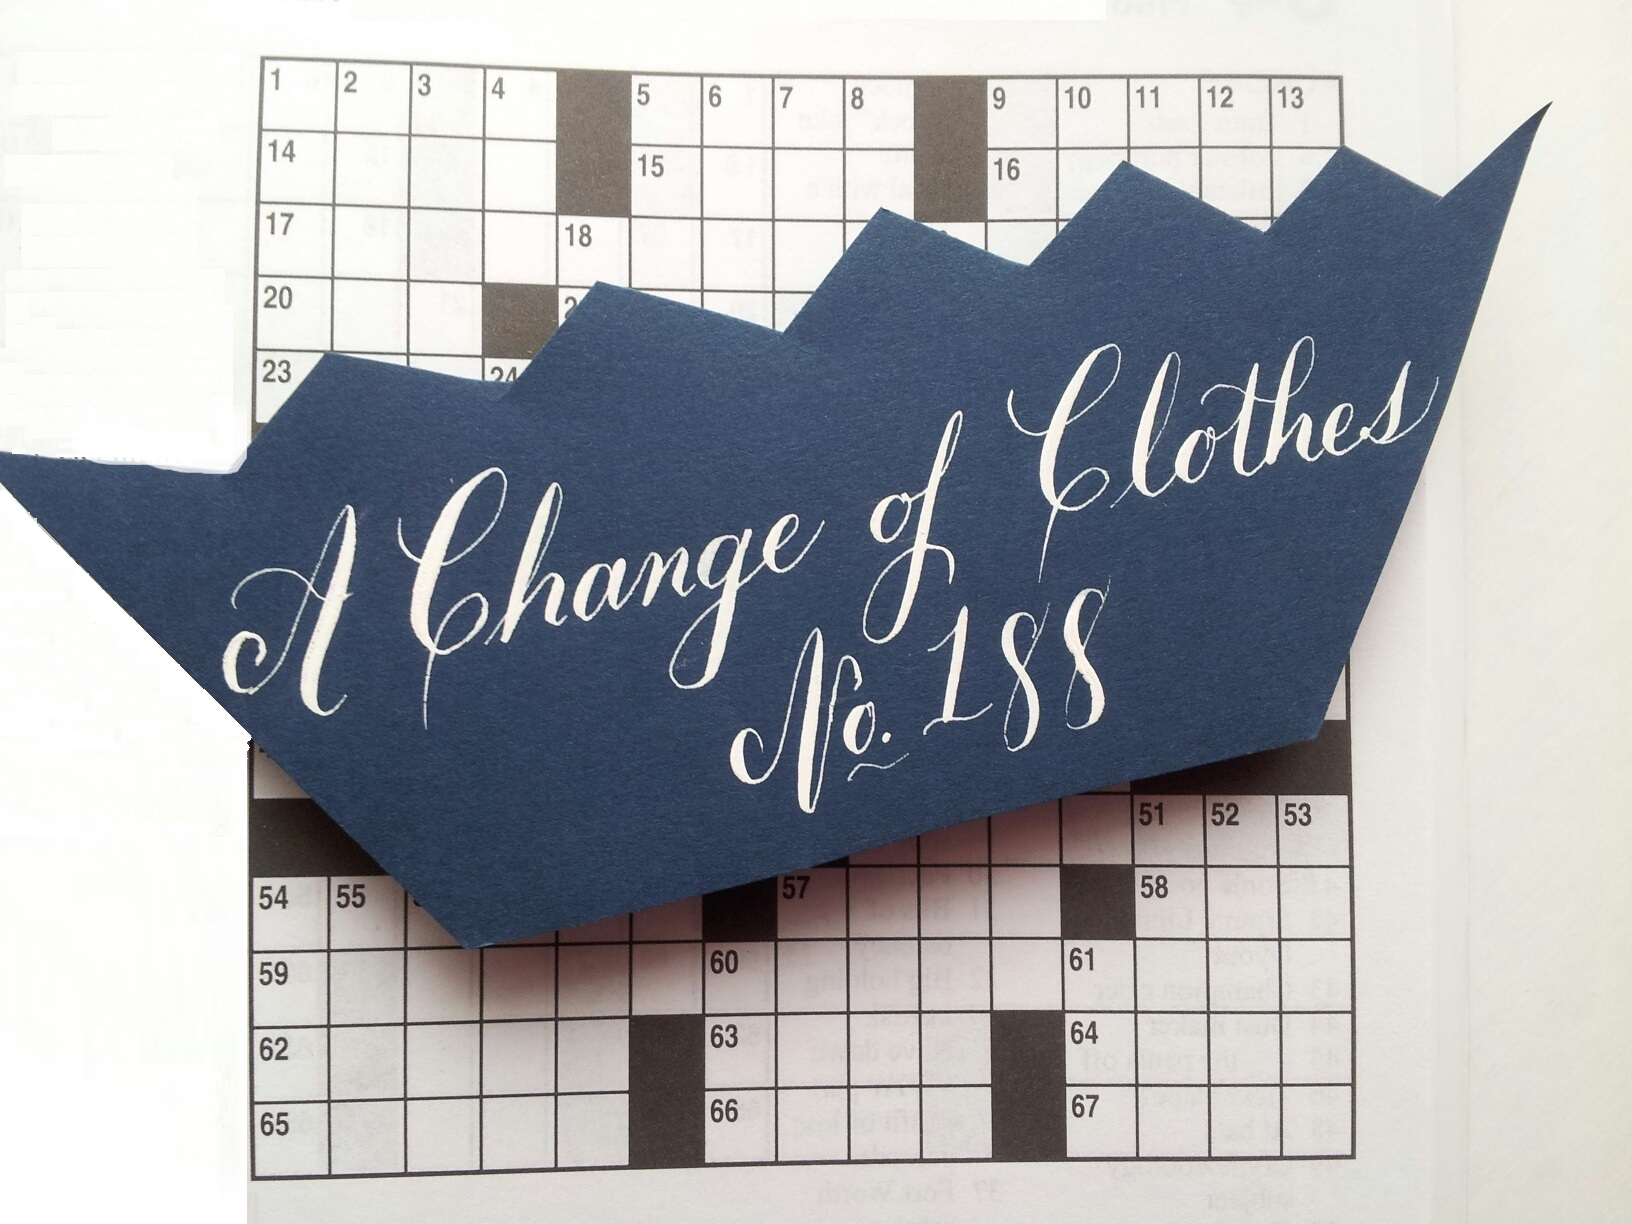 """Crossword Nation: """"A Change of Clothes"""" Week 188"""